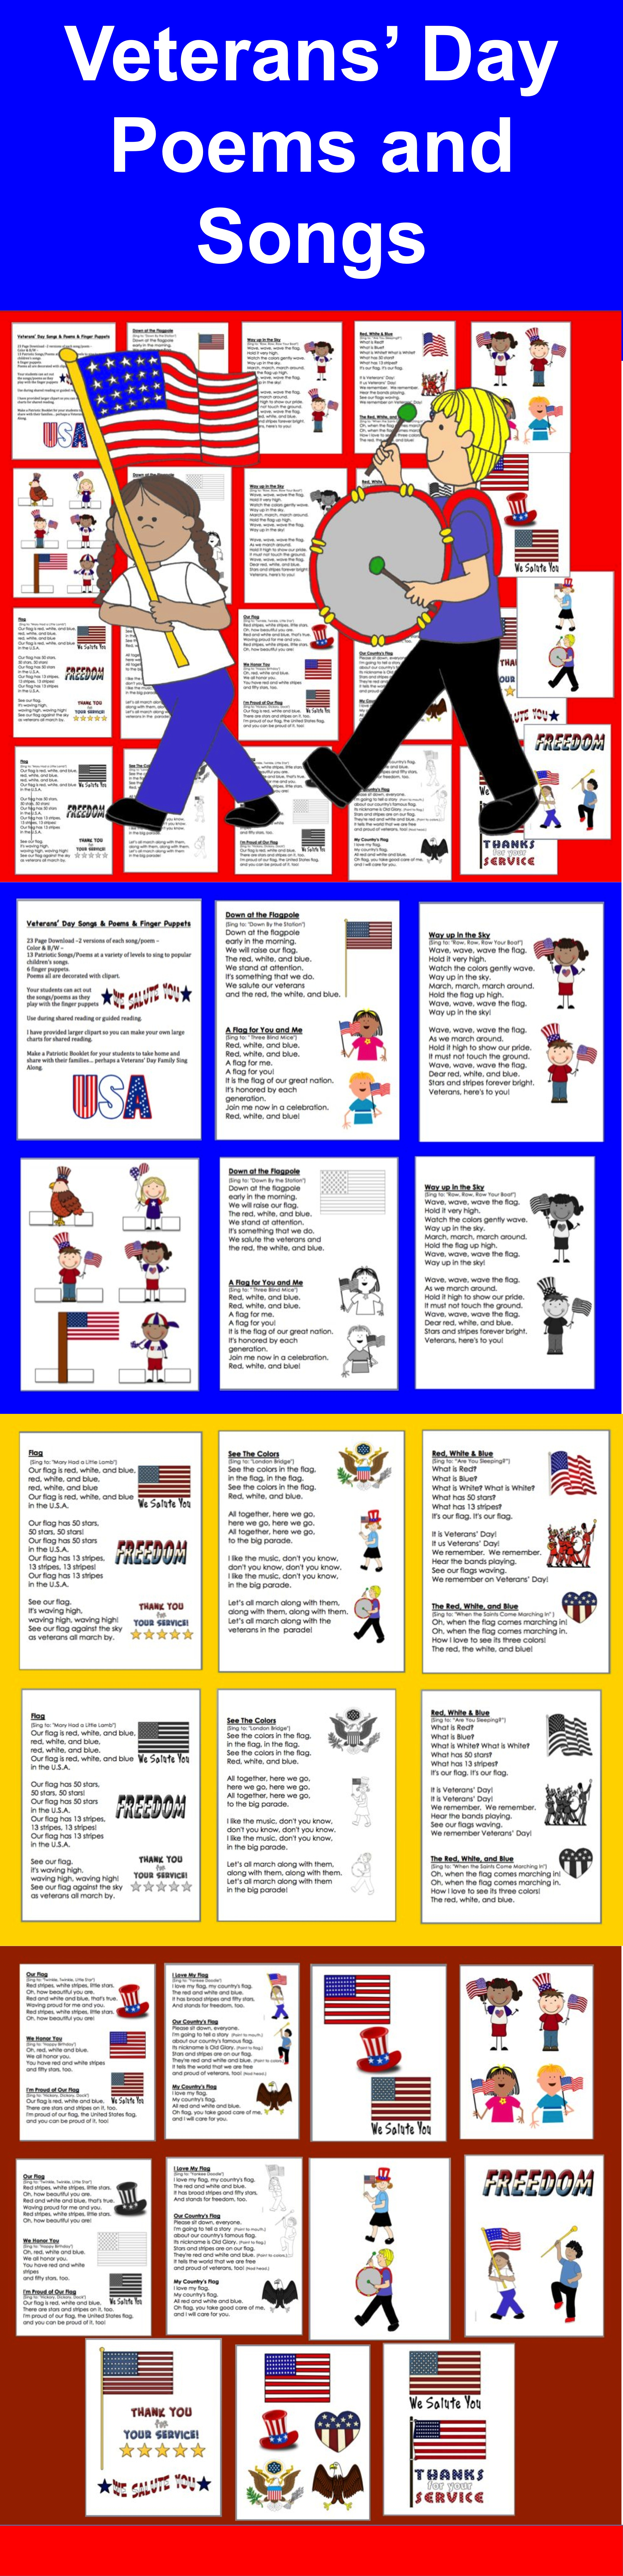 3 00 Veterans Day Songs And Poems And Finger Puppets